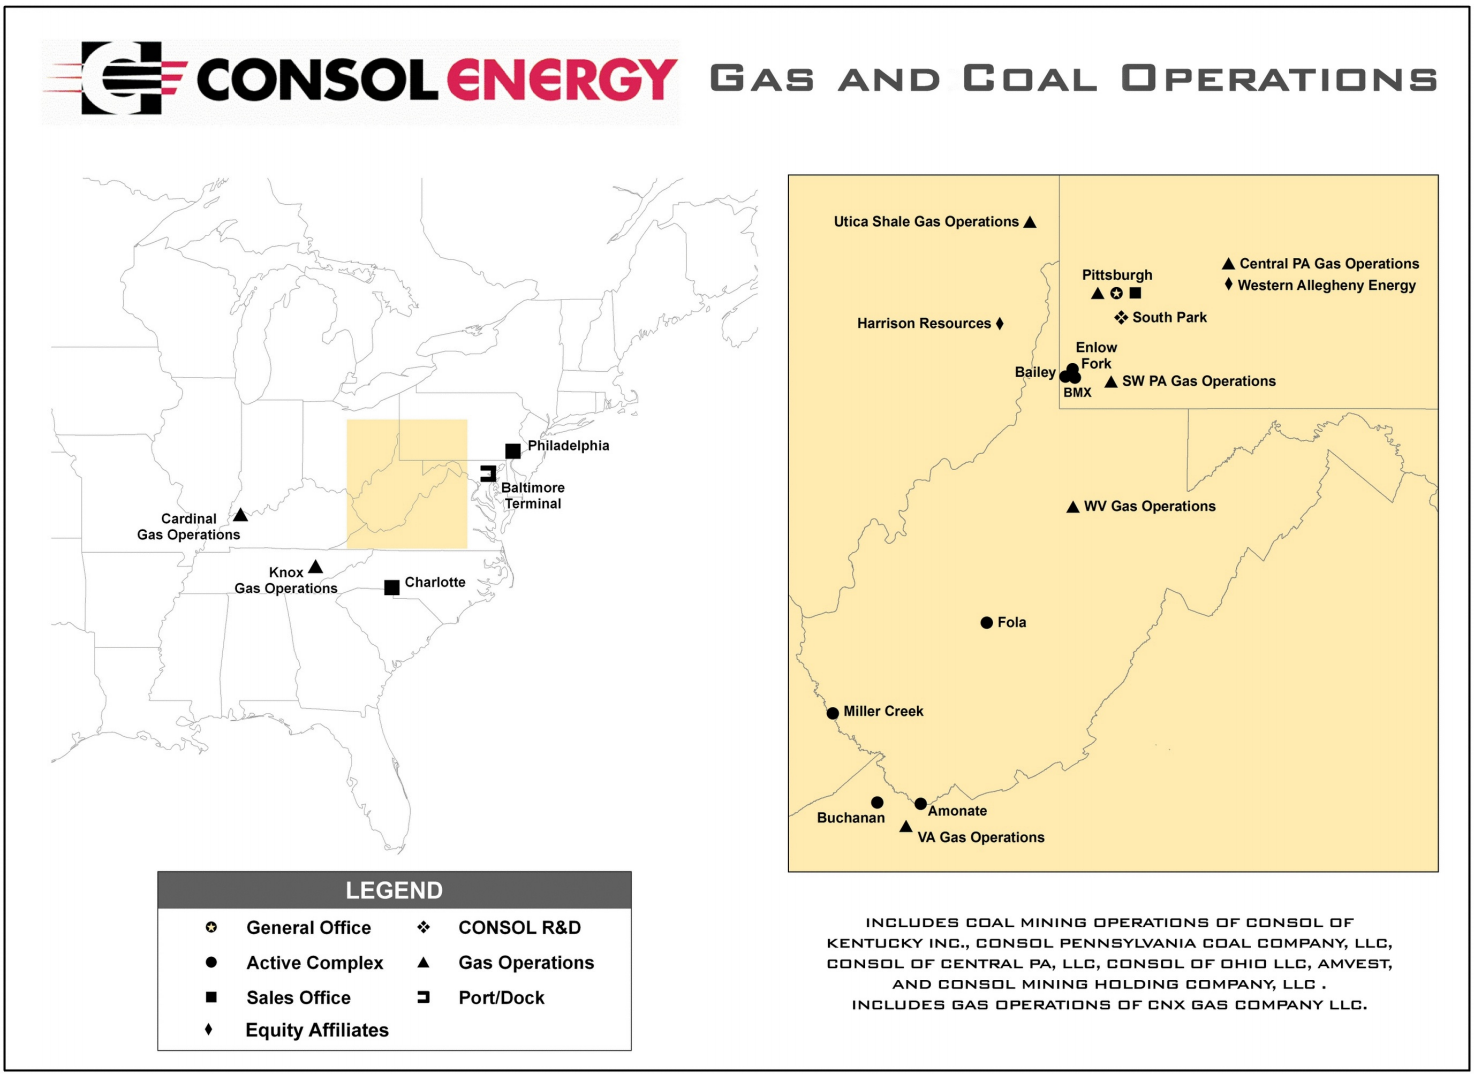 CONSOL Energy - Gas and Coal operations